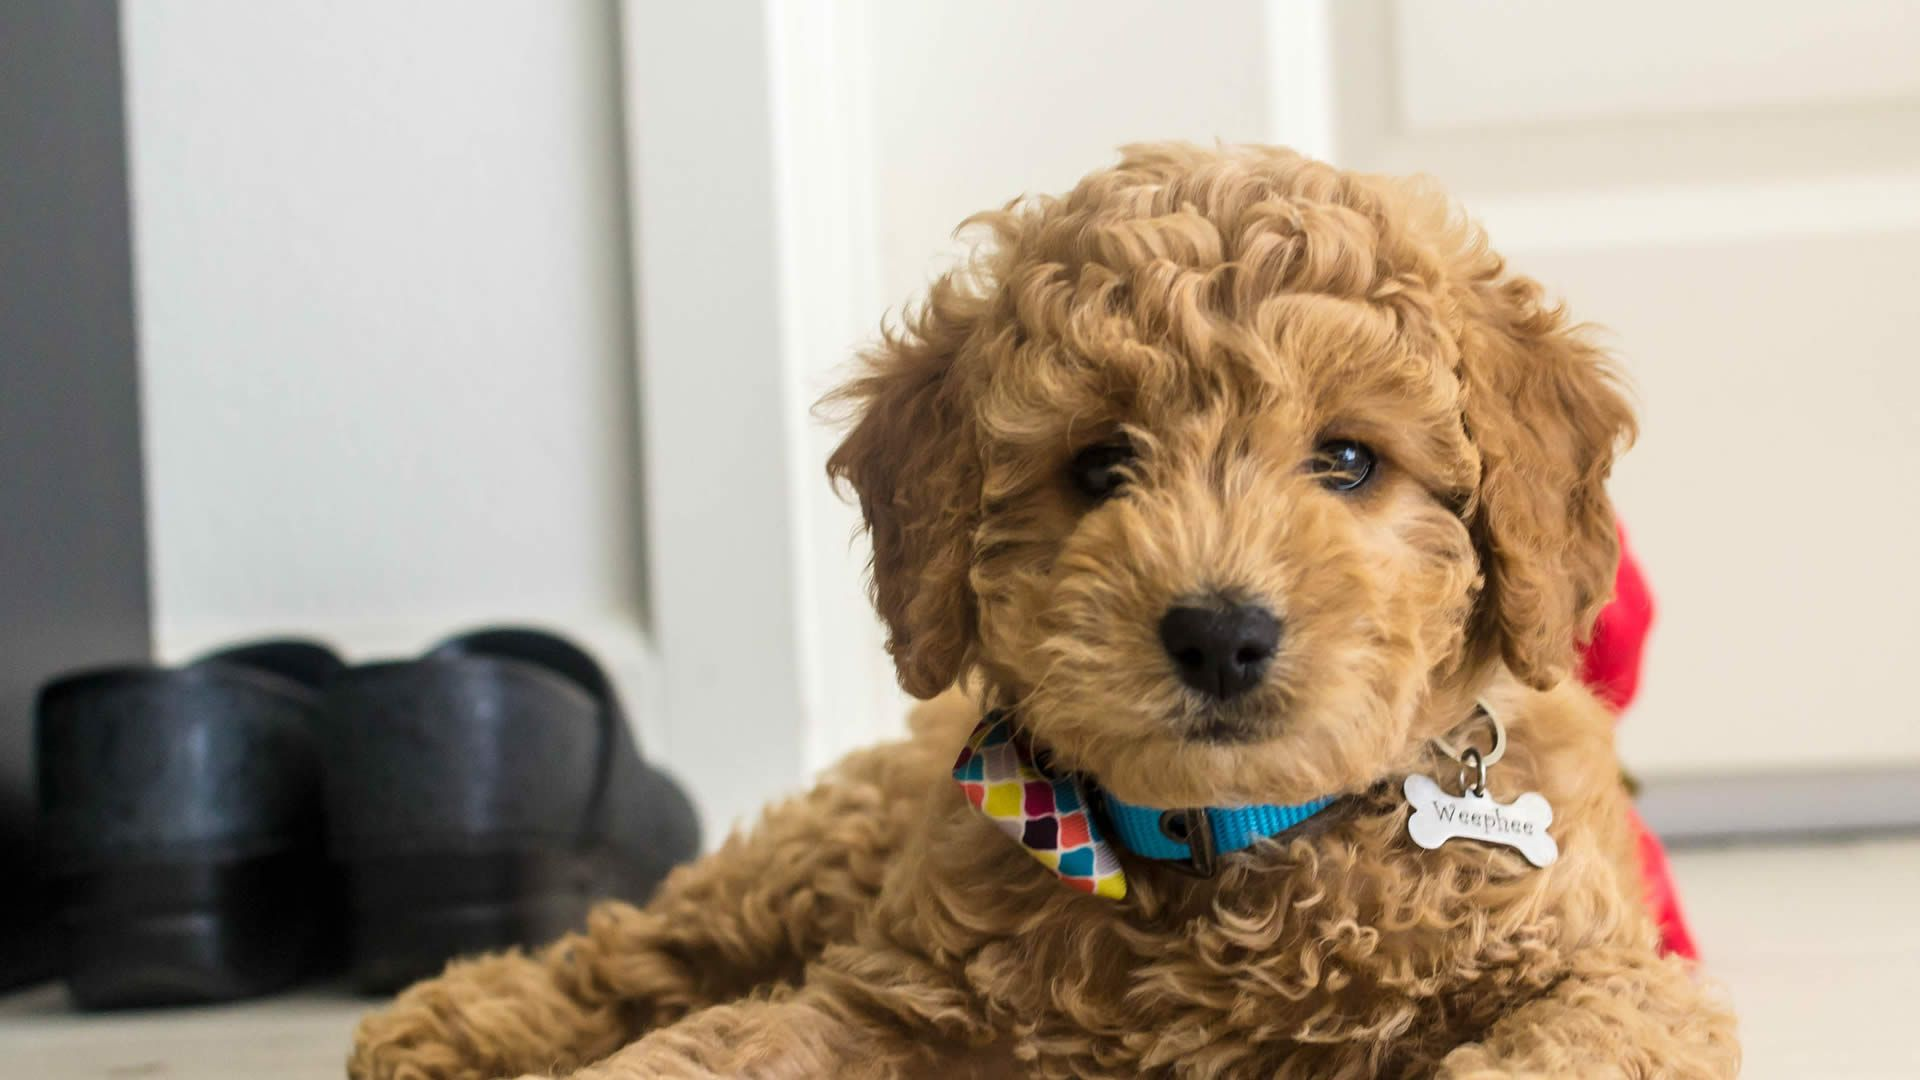 If You Are Looking For An Engaging Family Friendly Dog Who Won T Take Up Too Much Space On The Couch Mini Goldendoodle Toy Goldendoodle Goldendoodle Miniature